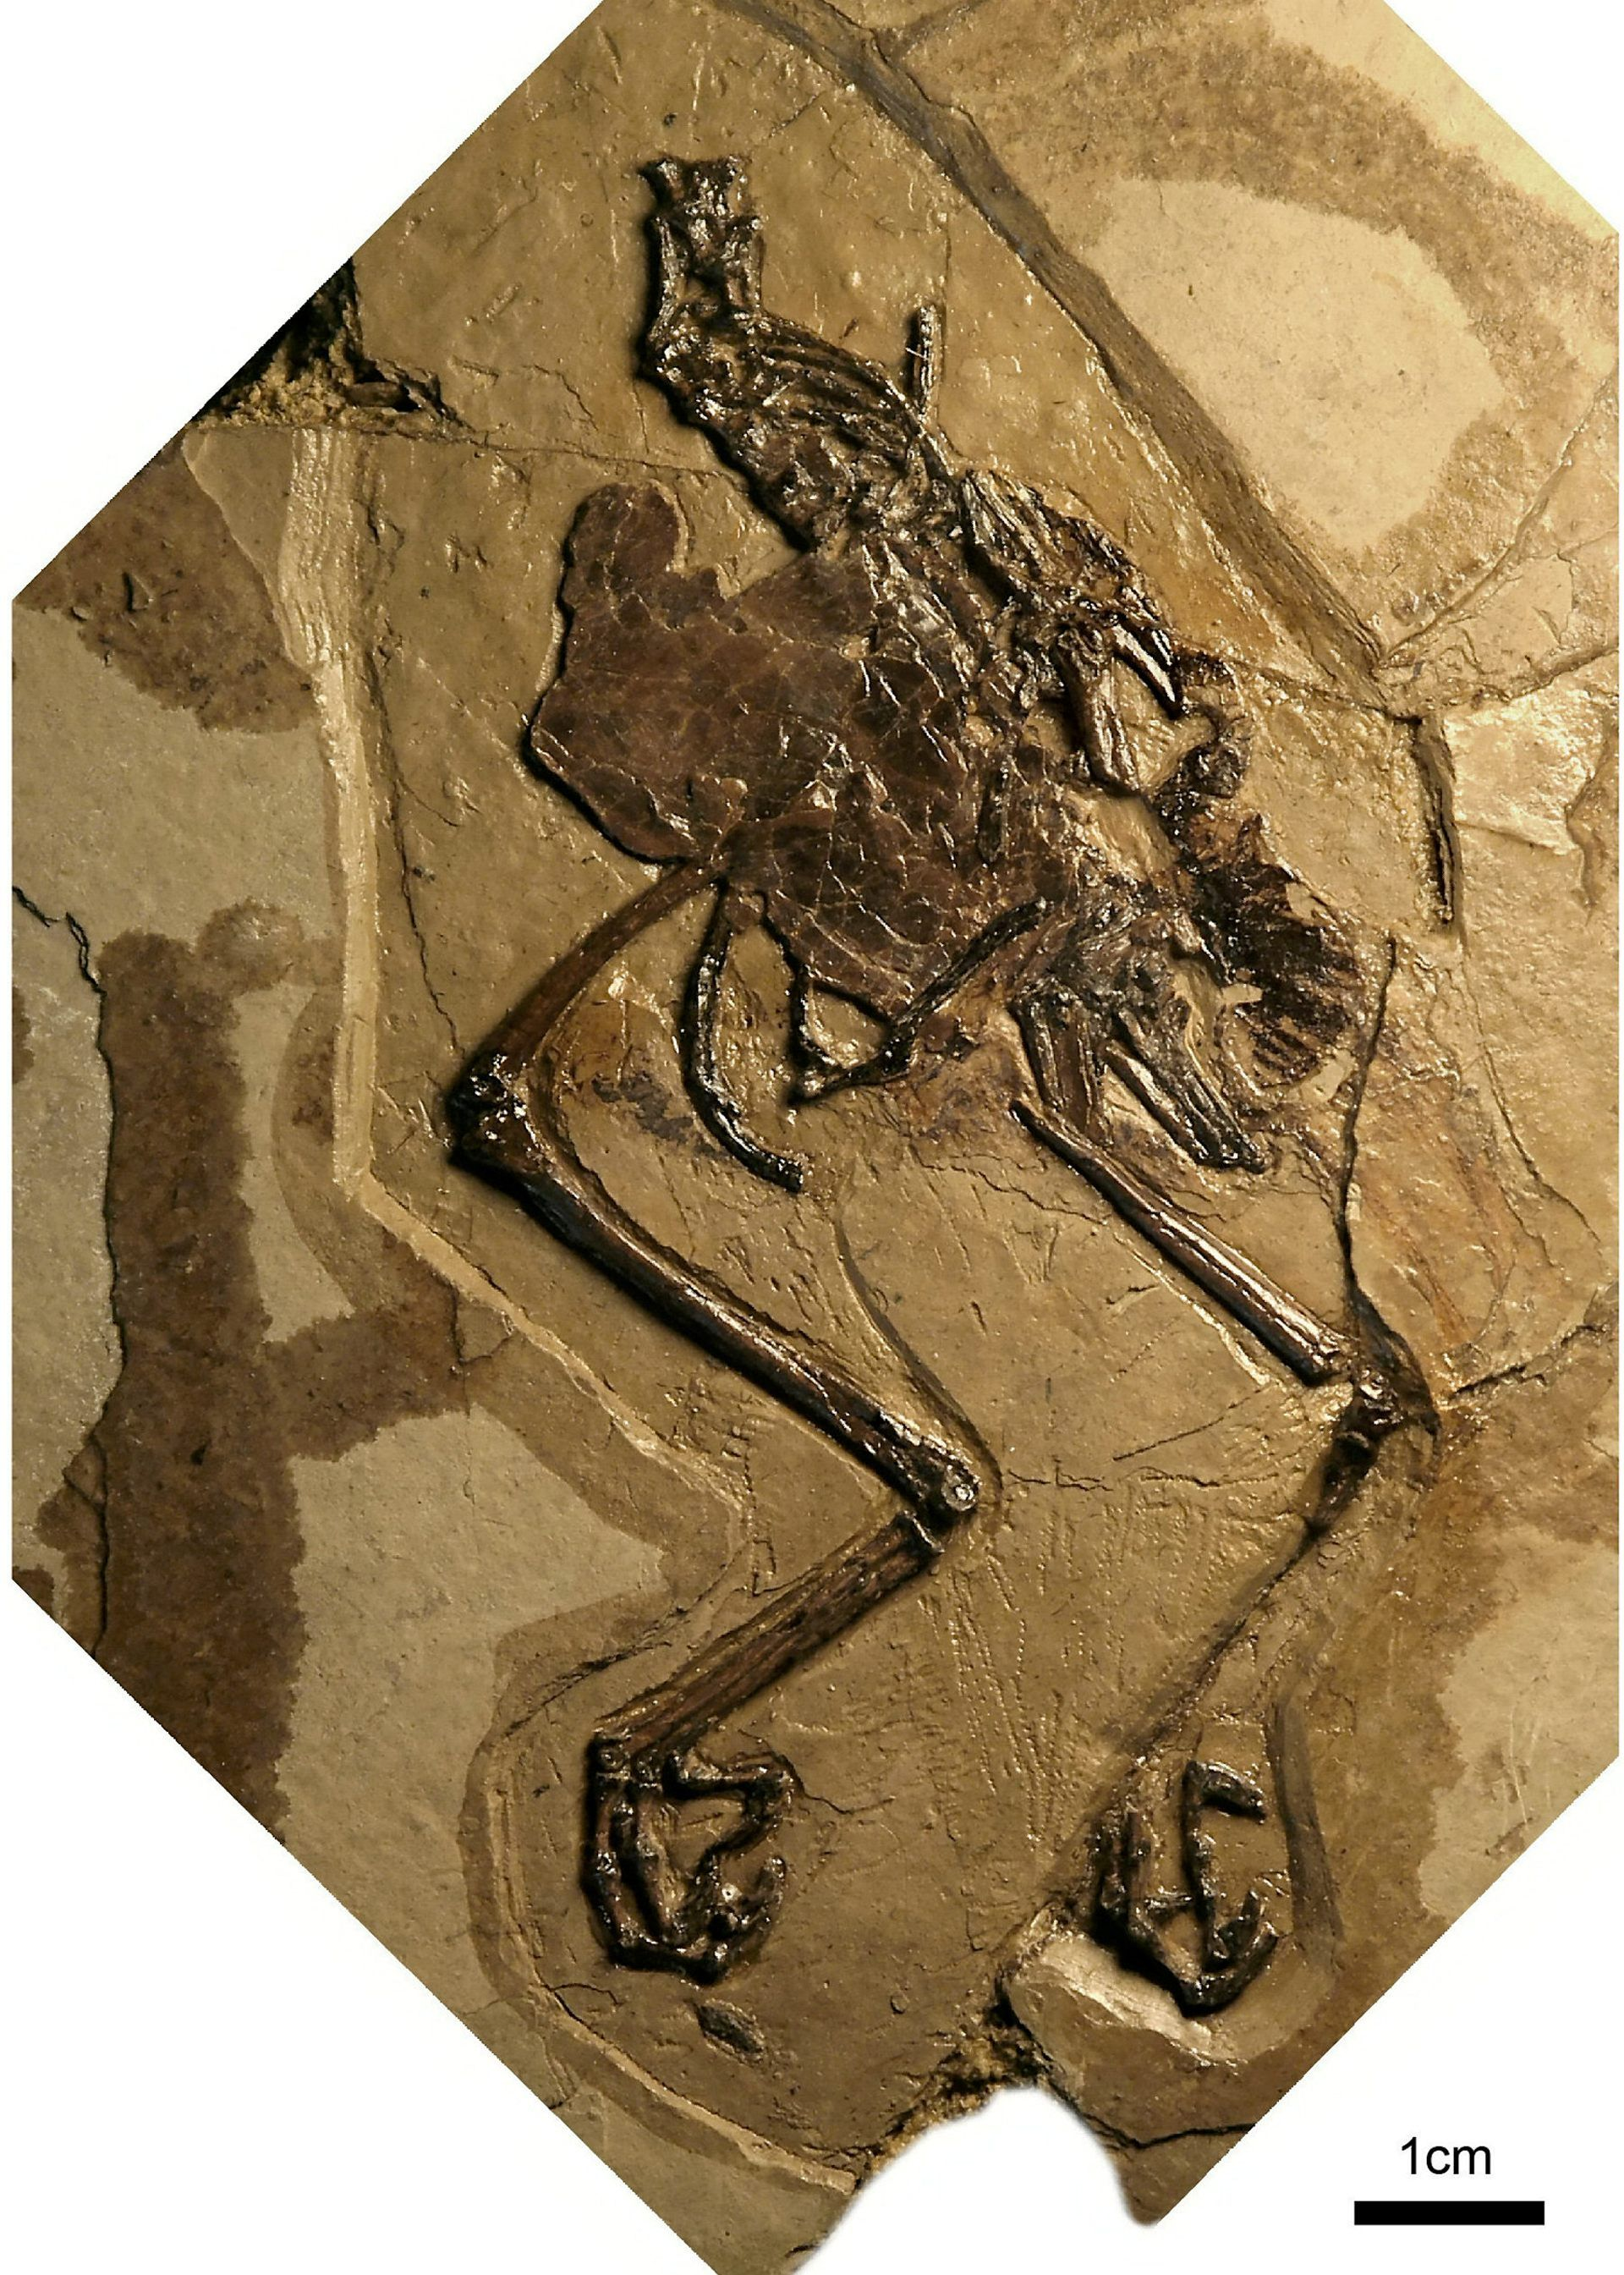 110 Million Year Old Bird Fossil Found With Egg Inside Fossil Ancient Dinosaur Era